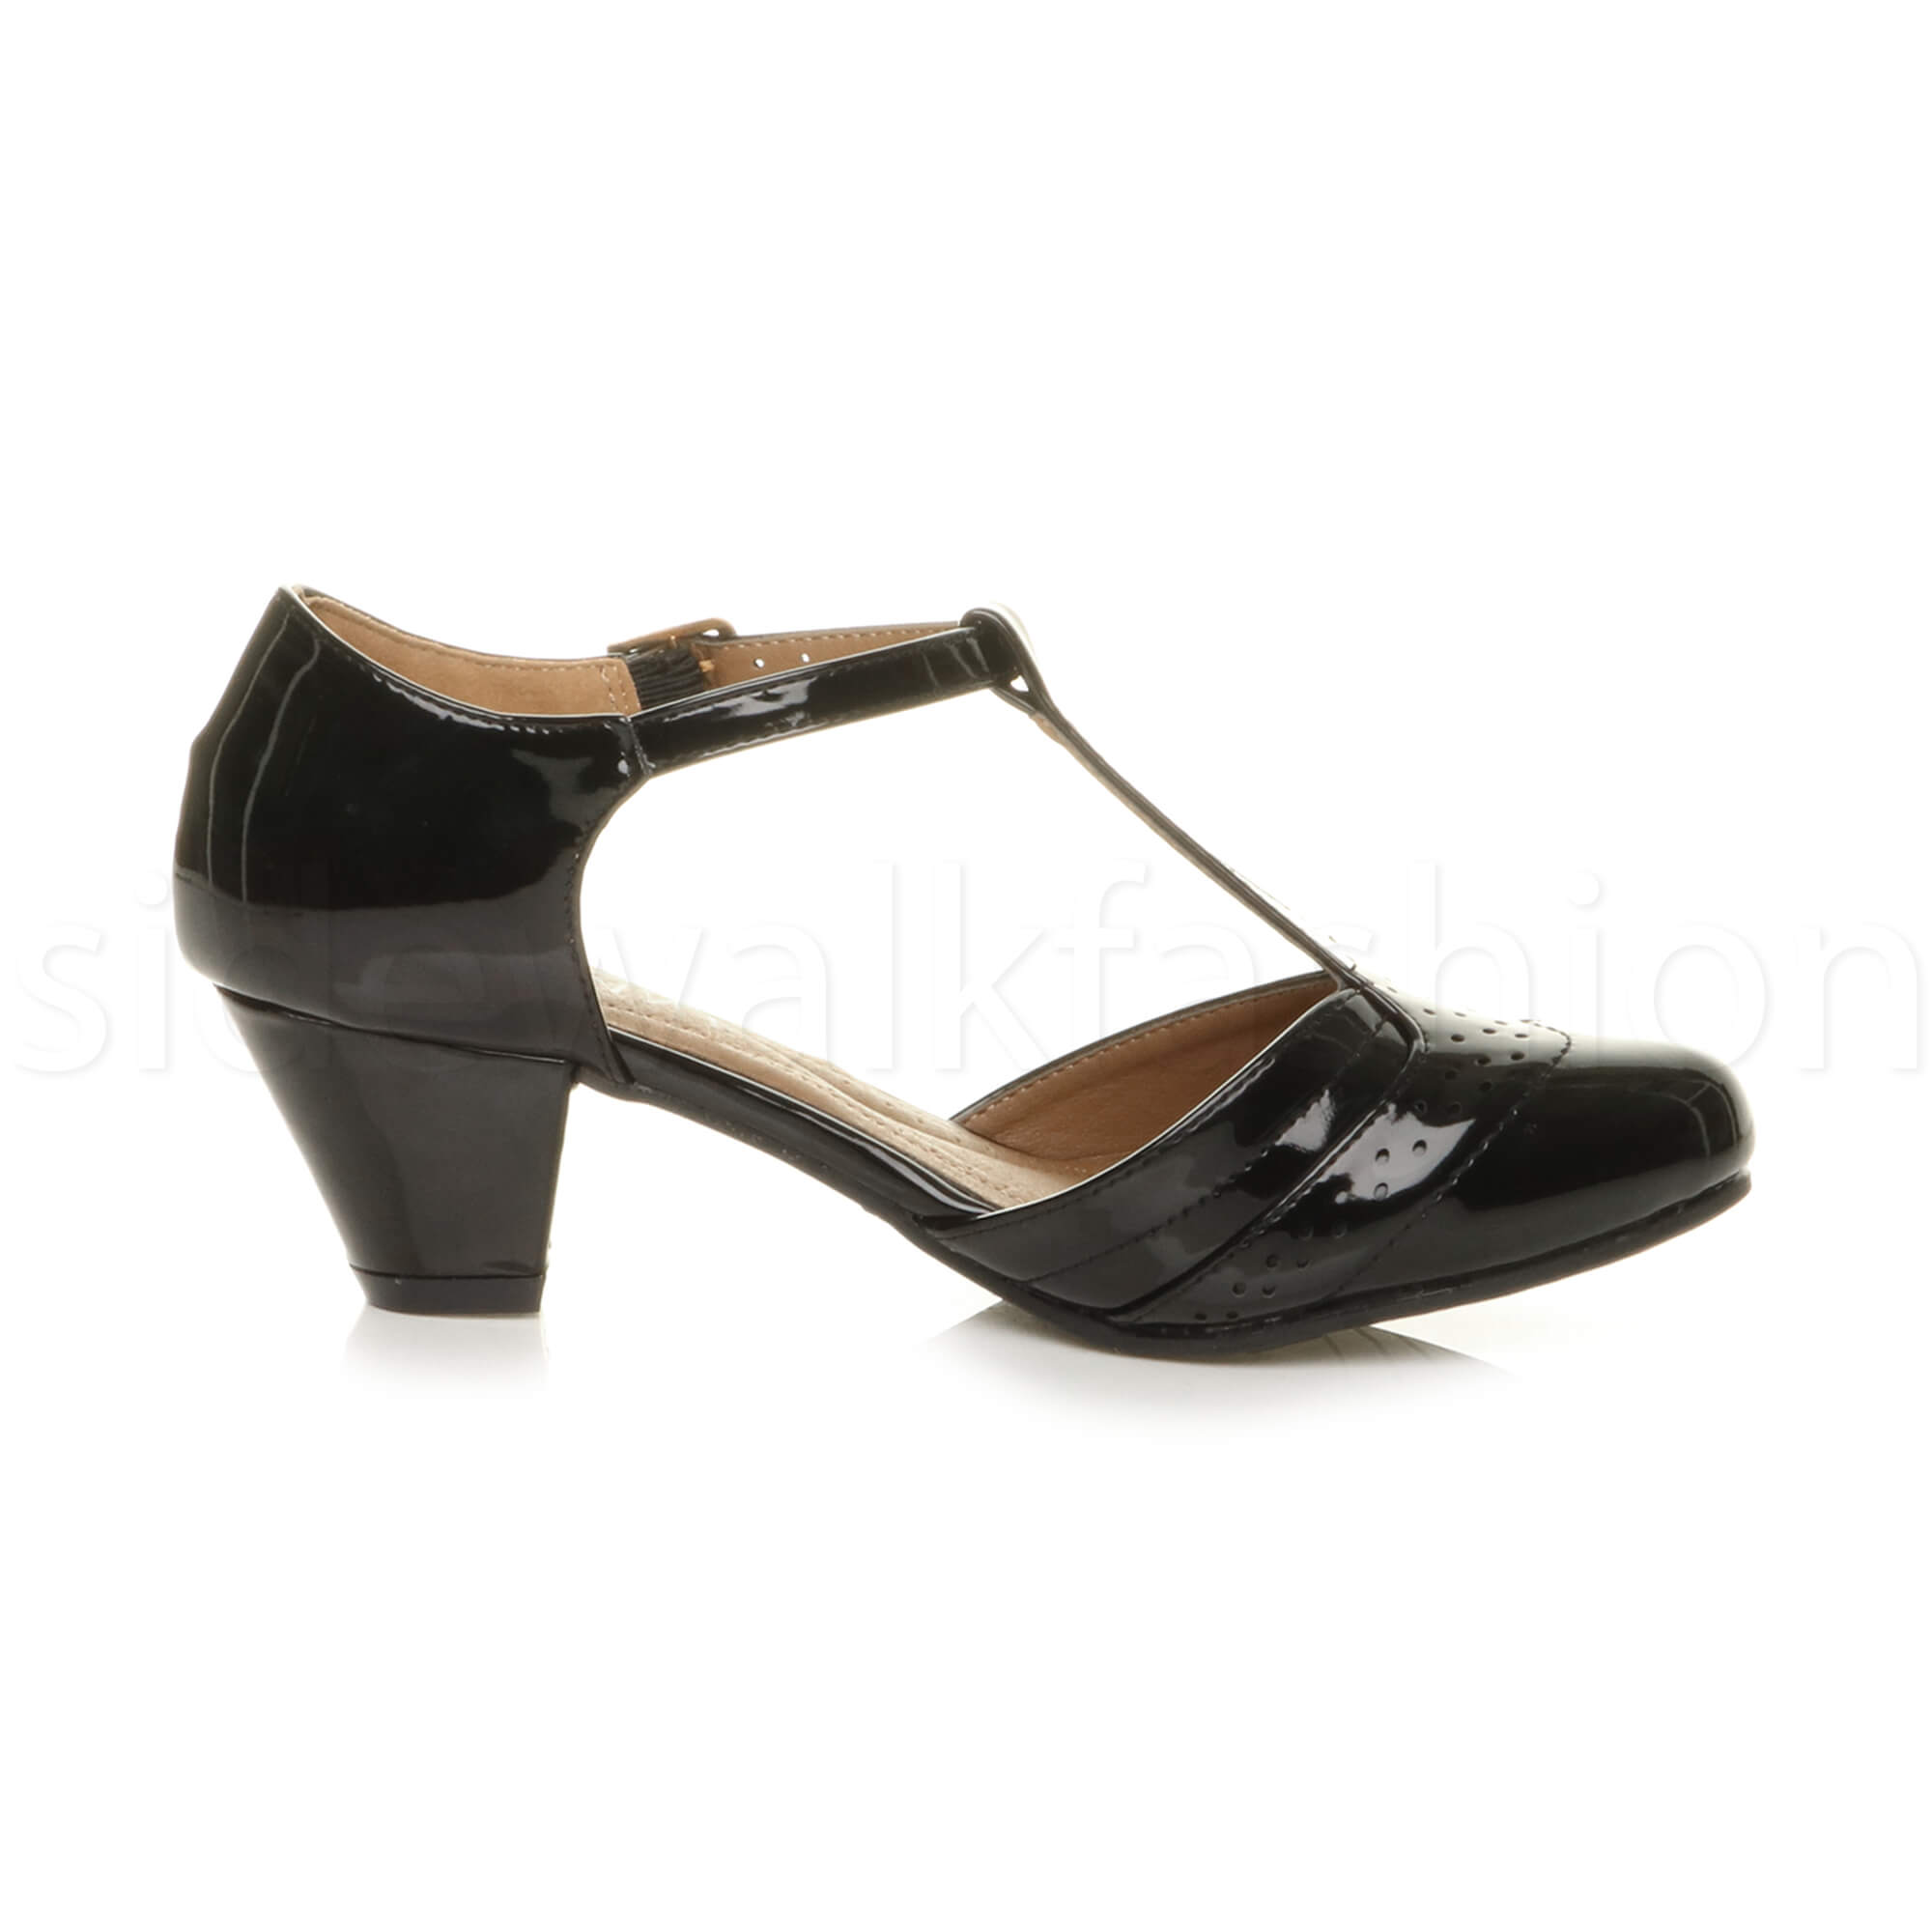 Womens-ladies-block-low-mid-heel-smart-work-Mary-Jane-T-bar-brogue-court-shoes thumbnail 11